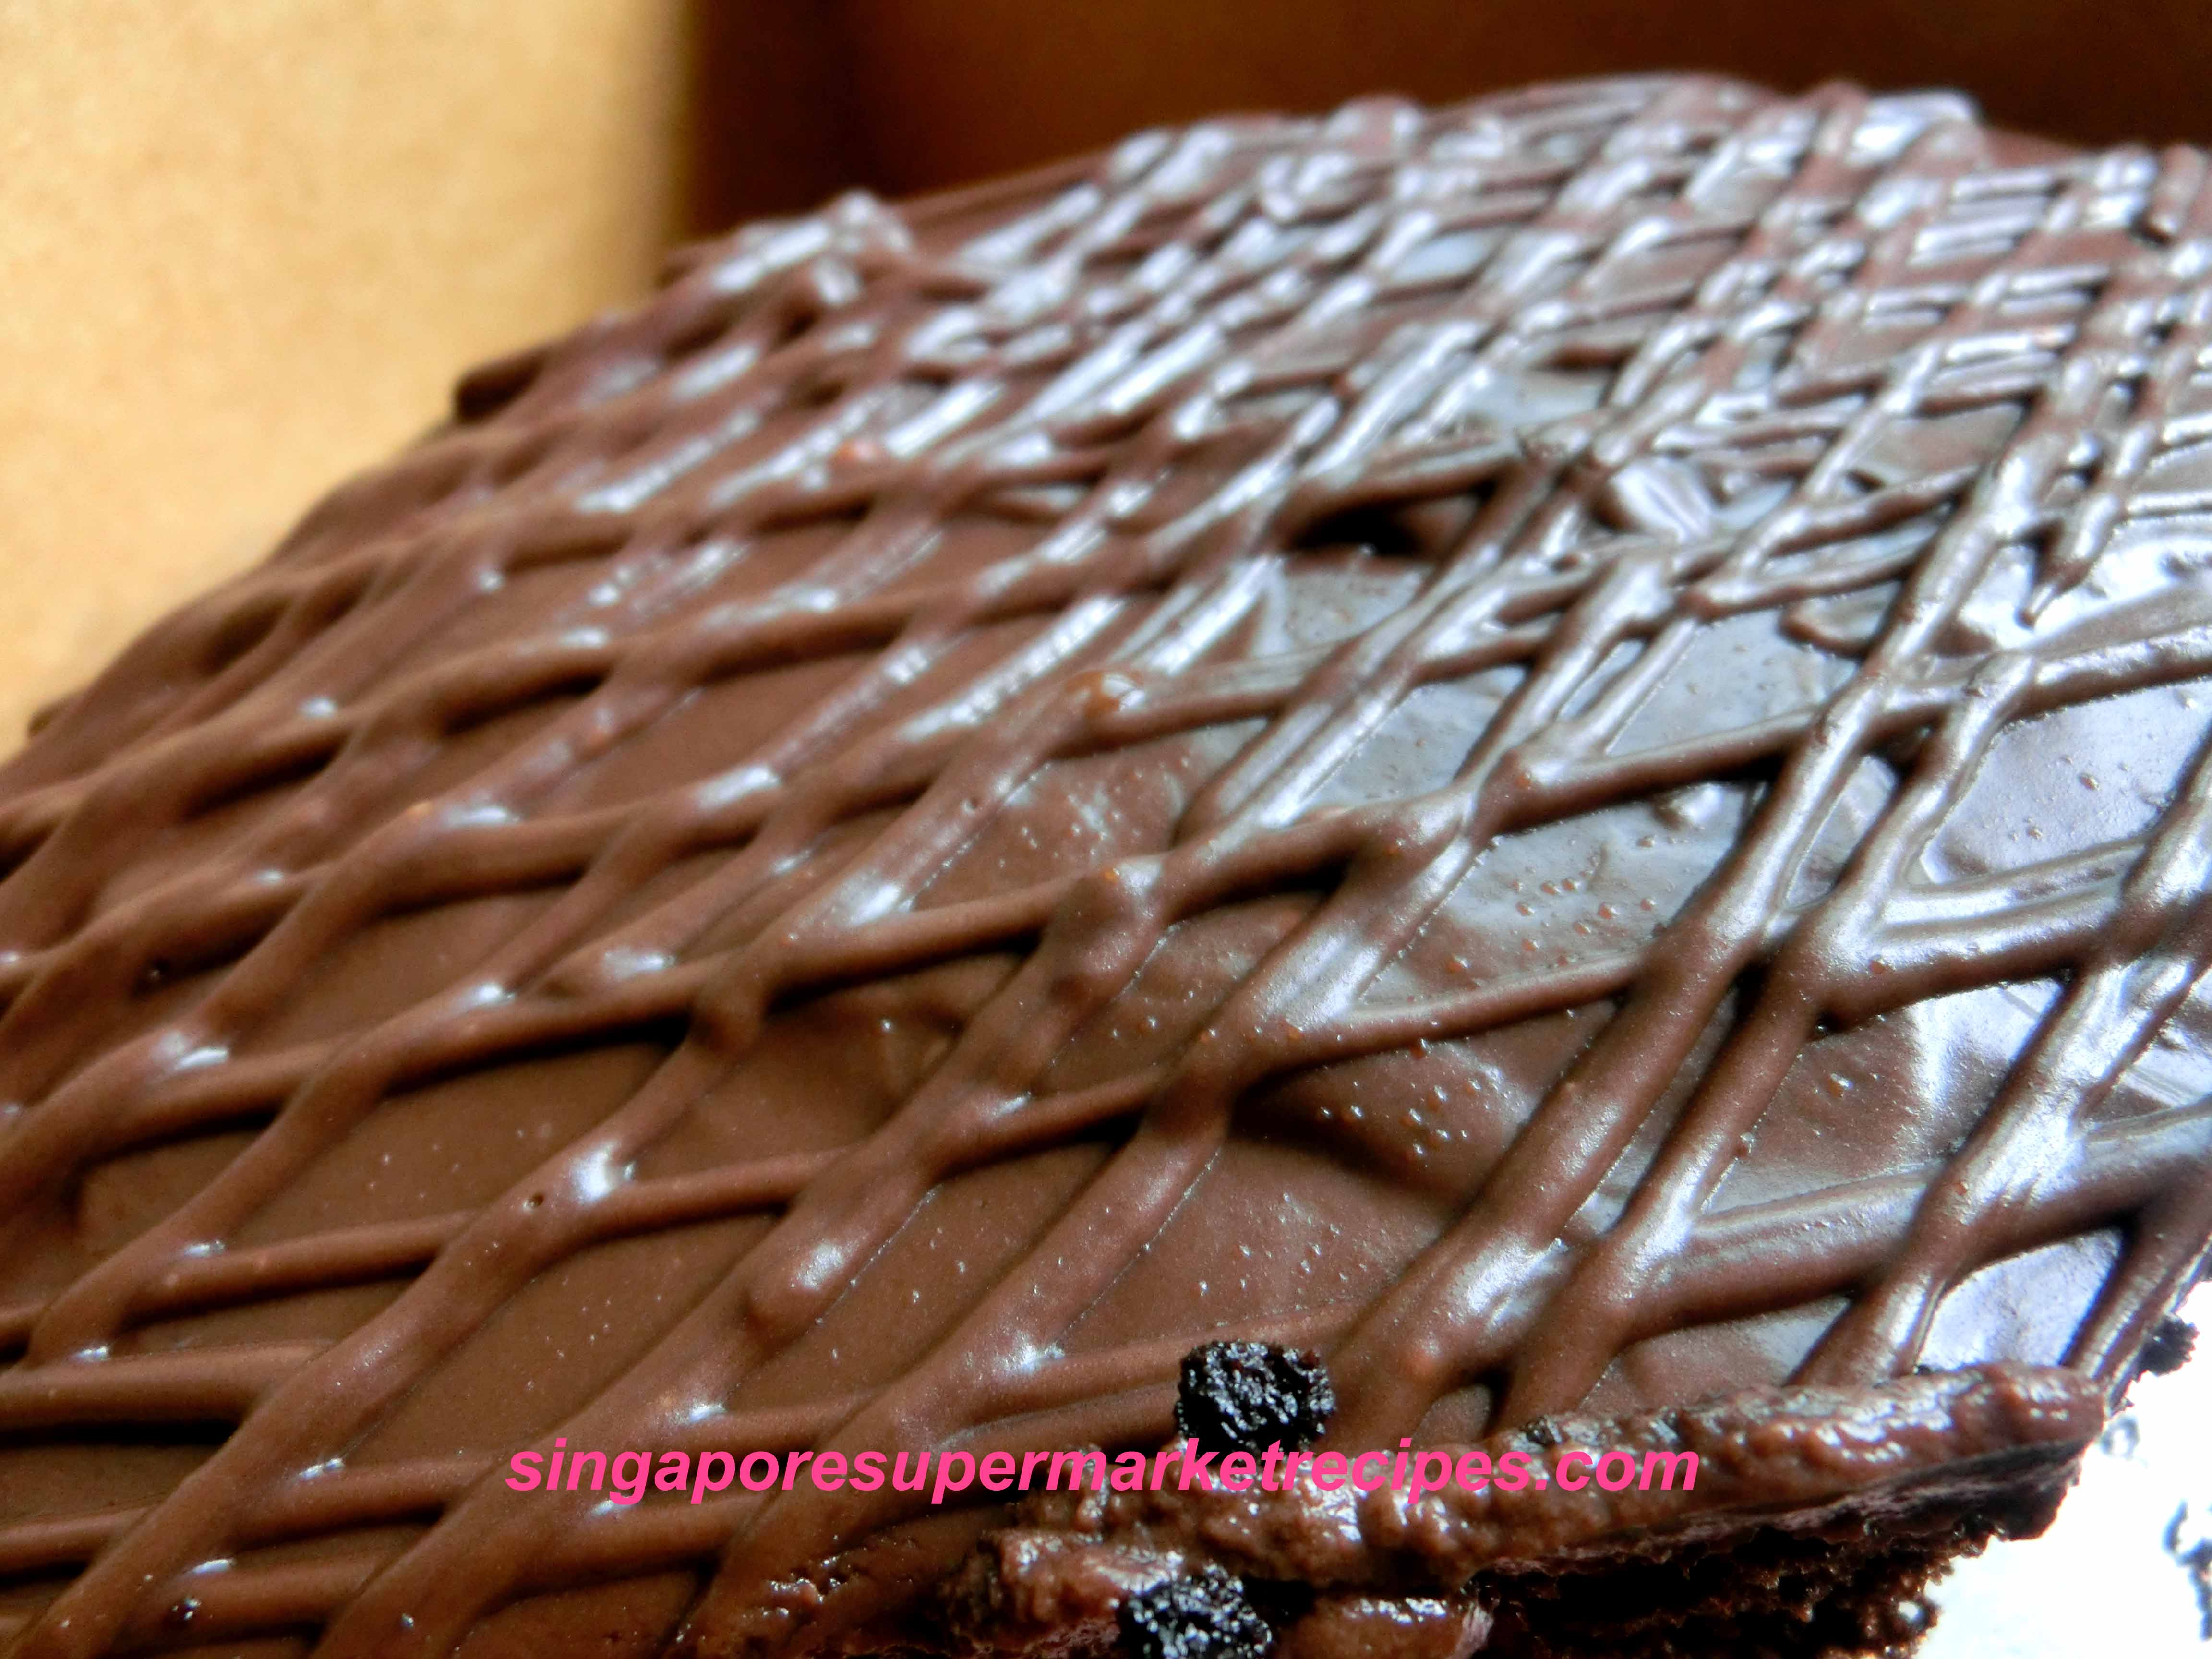 JANE'S CAKE STATION CAKES REVIEWS – INTERESTINGLY OVERLY MOIST AND ...